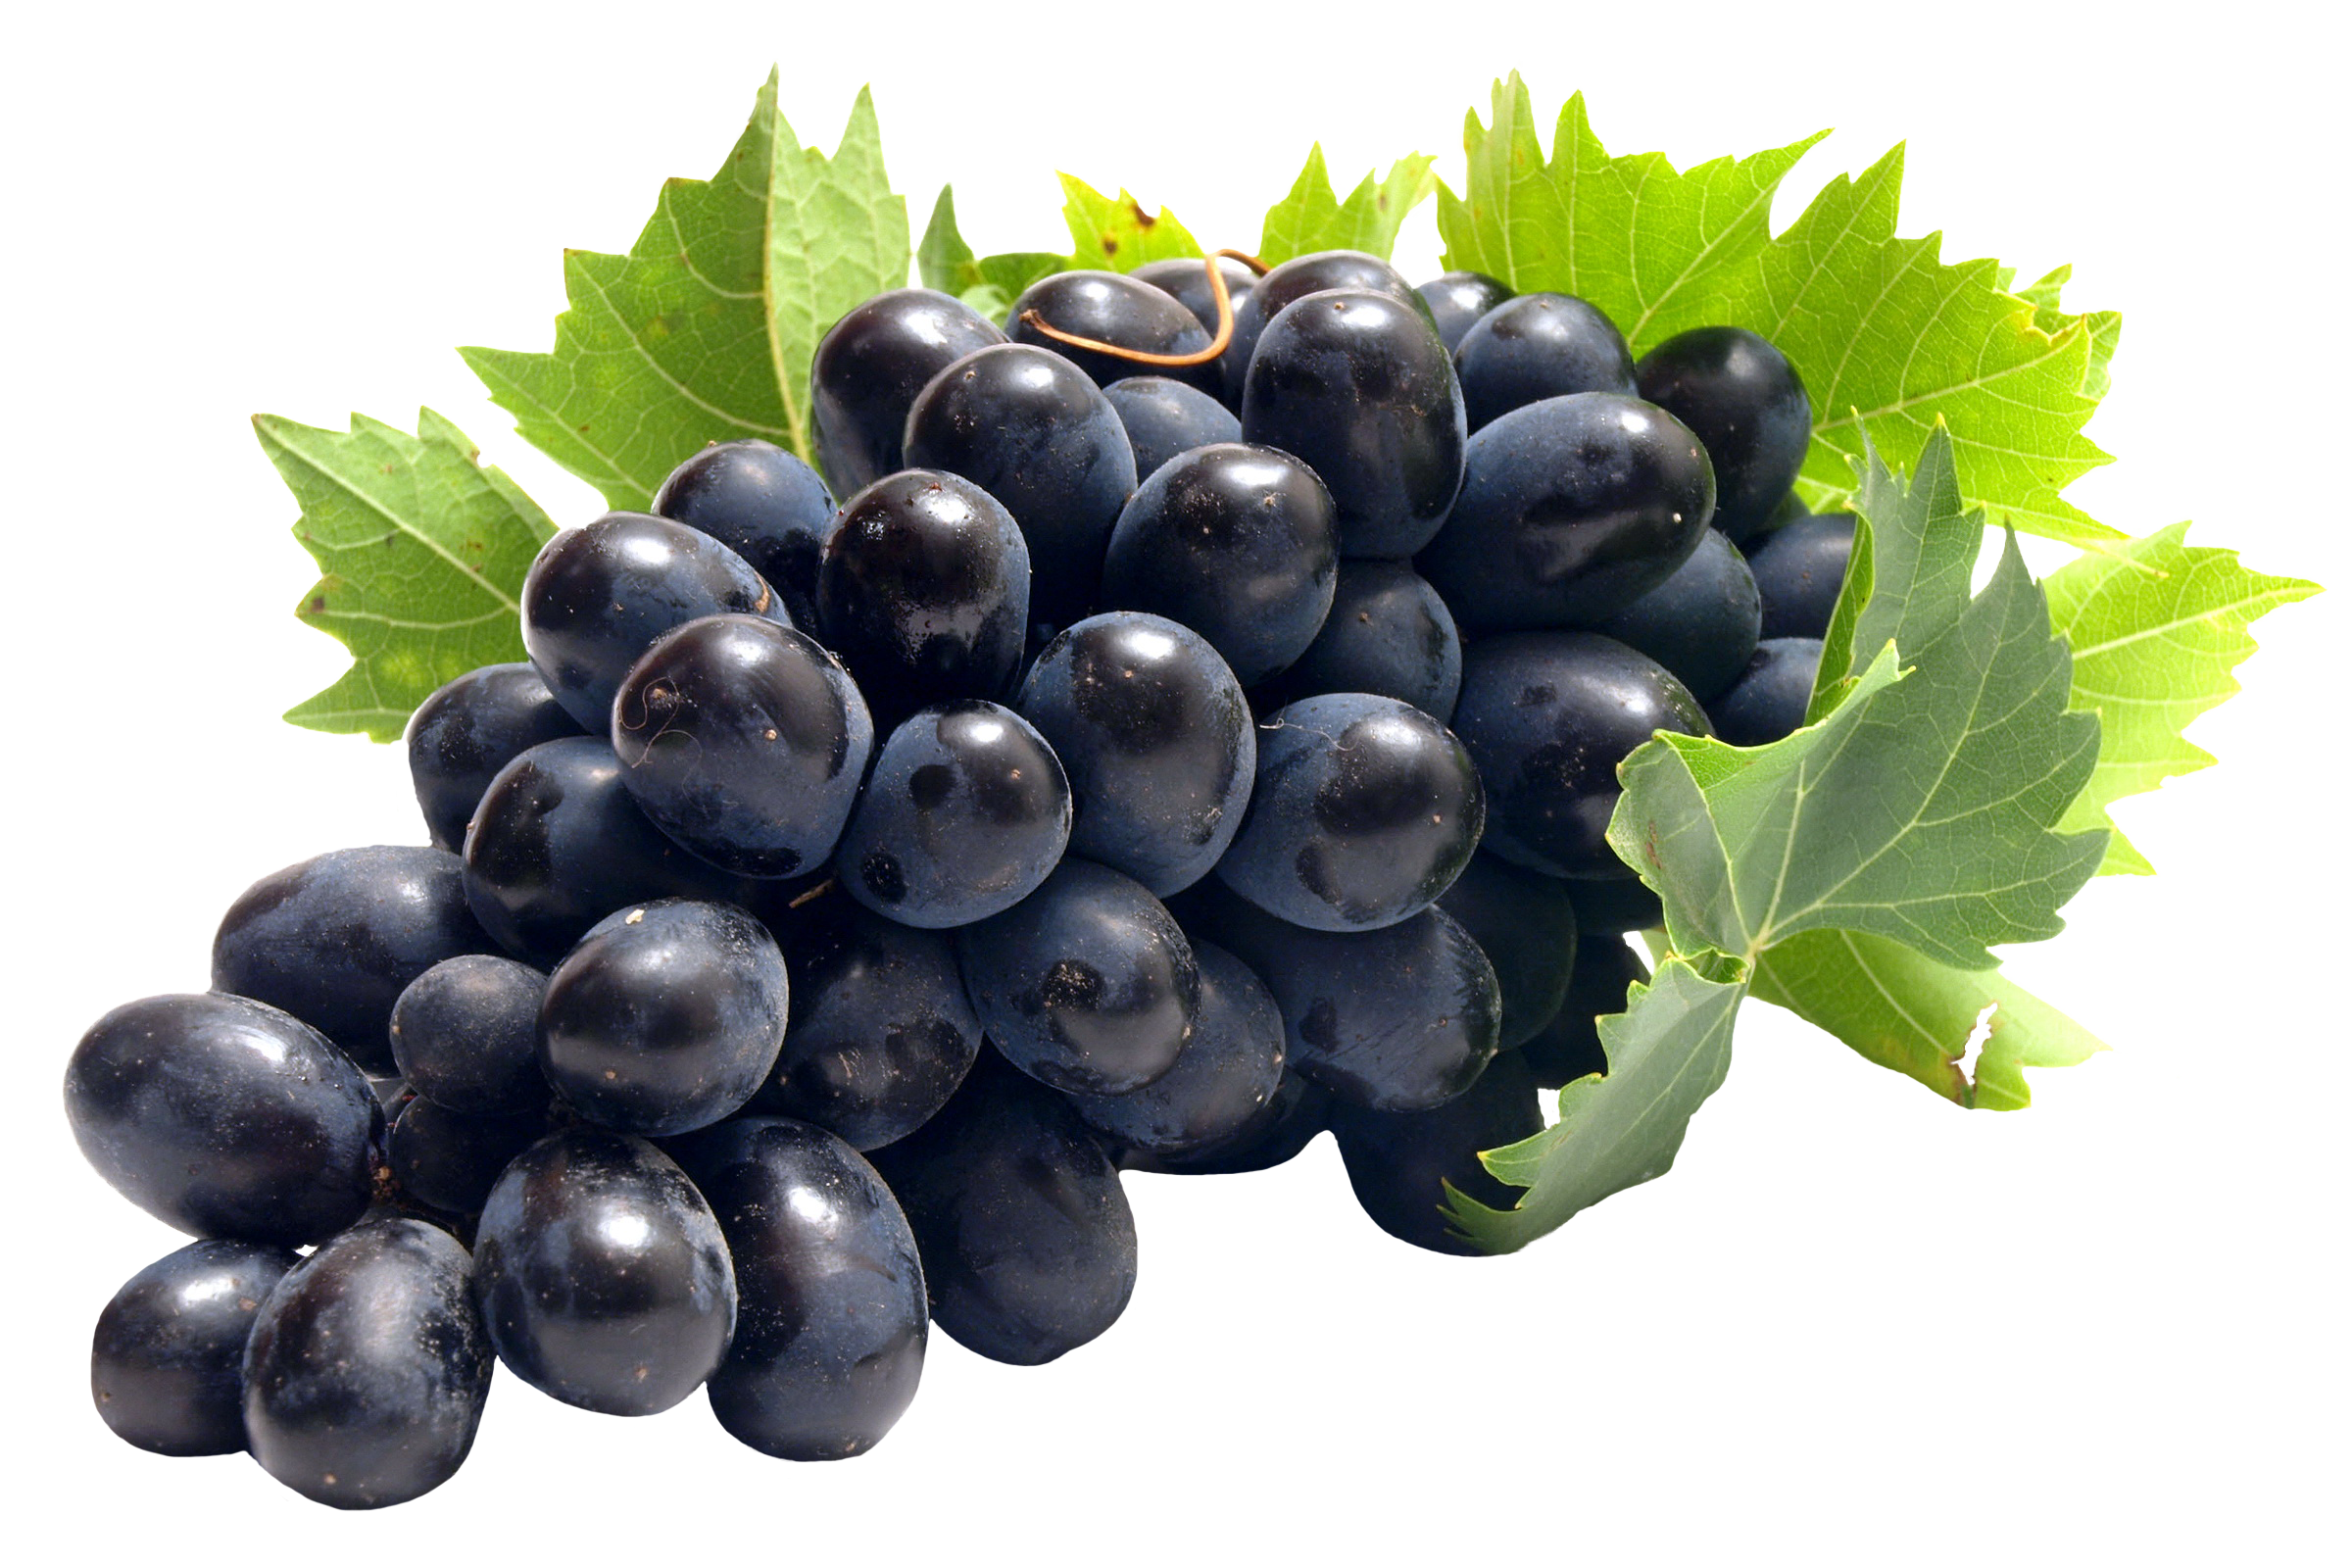 grape seed extract - serina sun